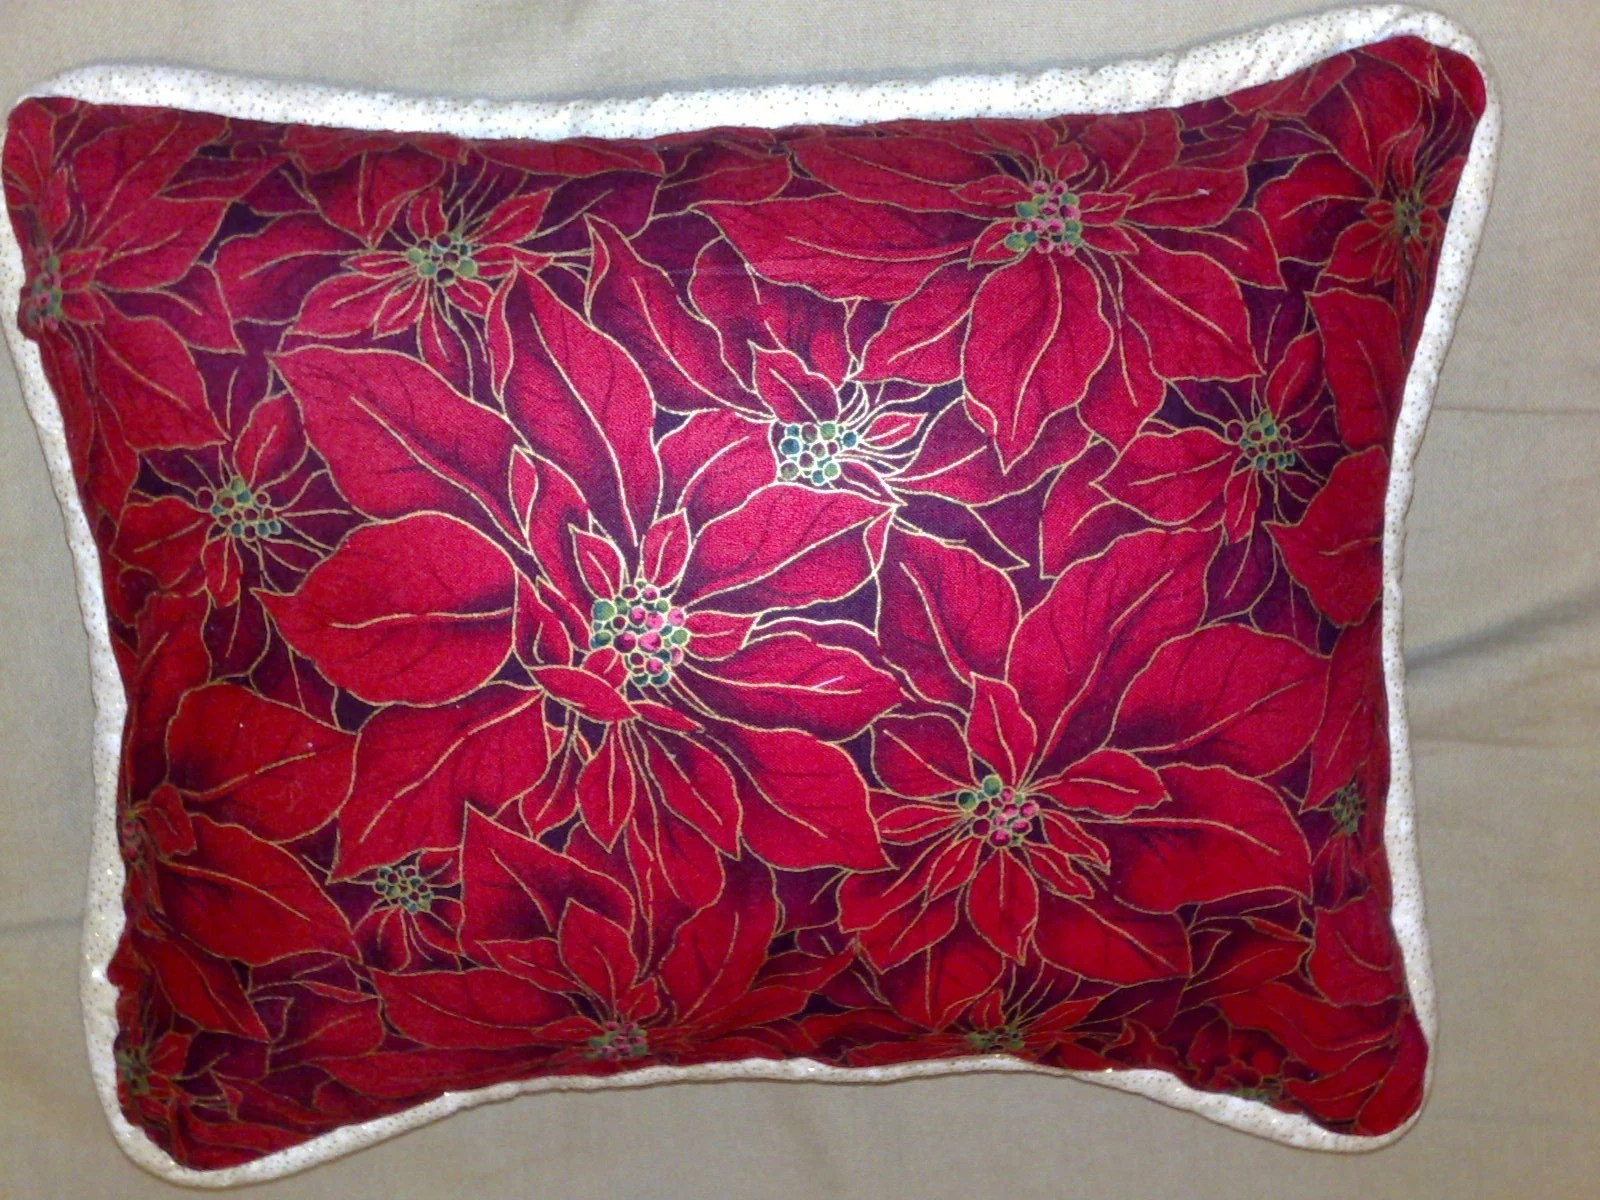 Elegant Christmas decorative pillows with a touch of sparkle